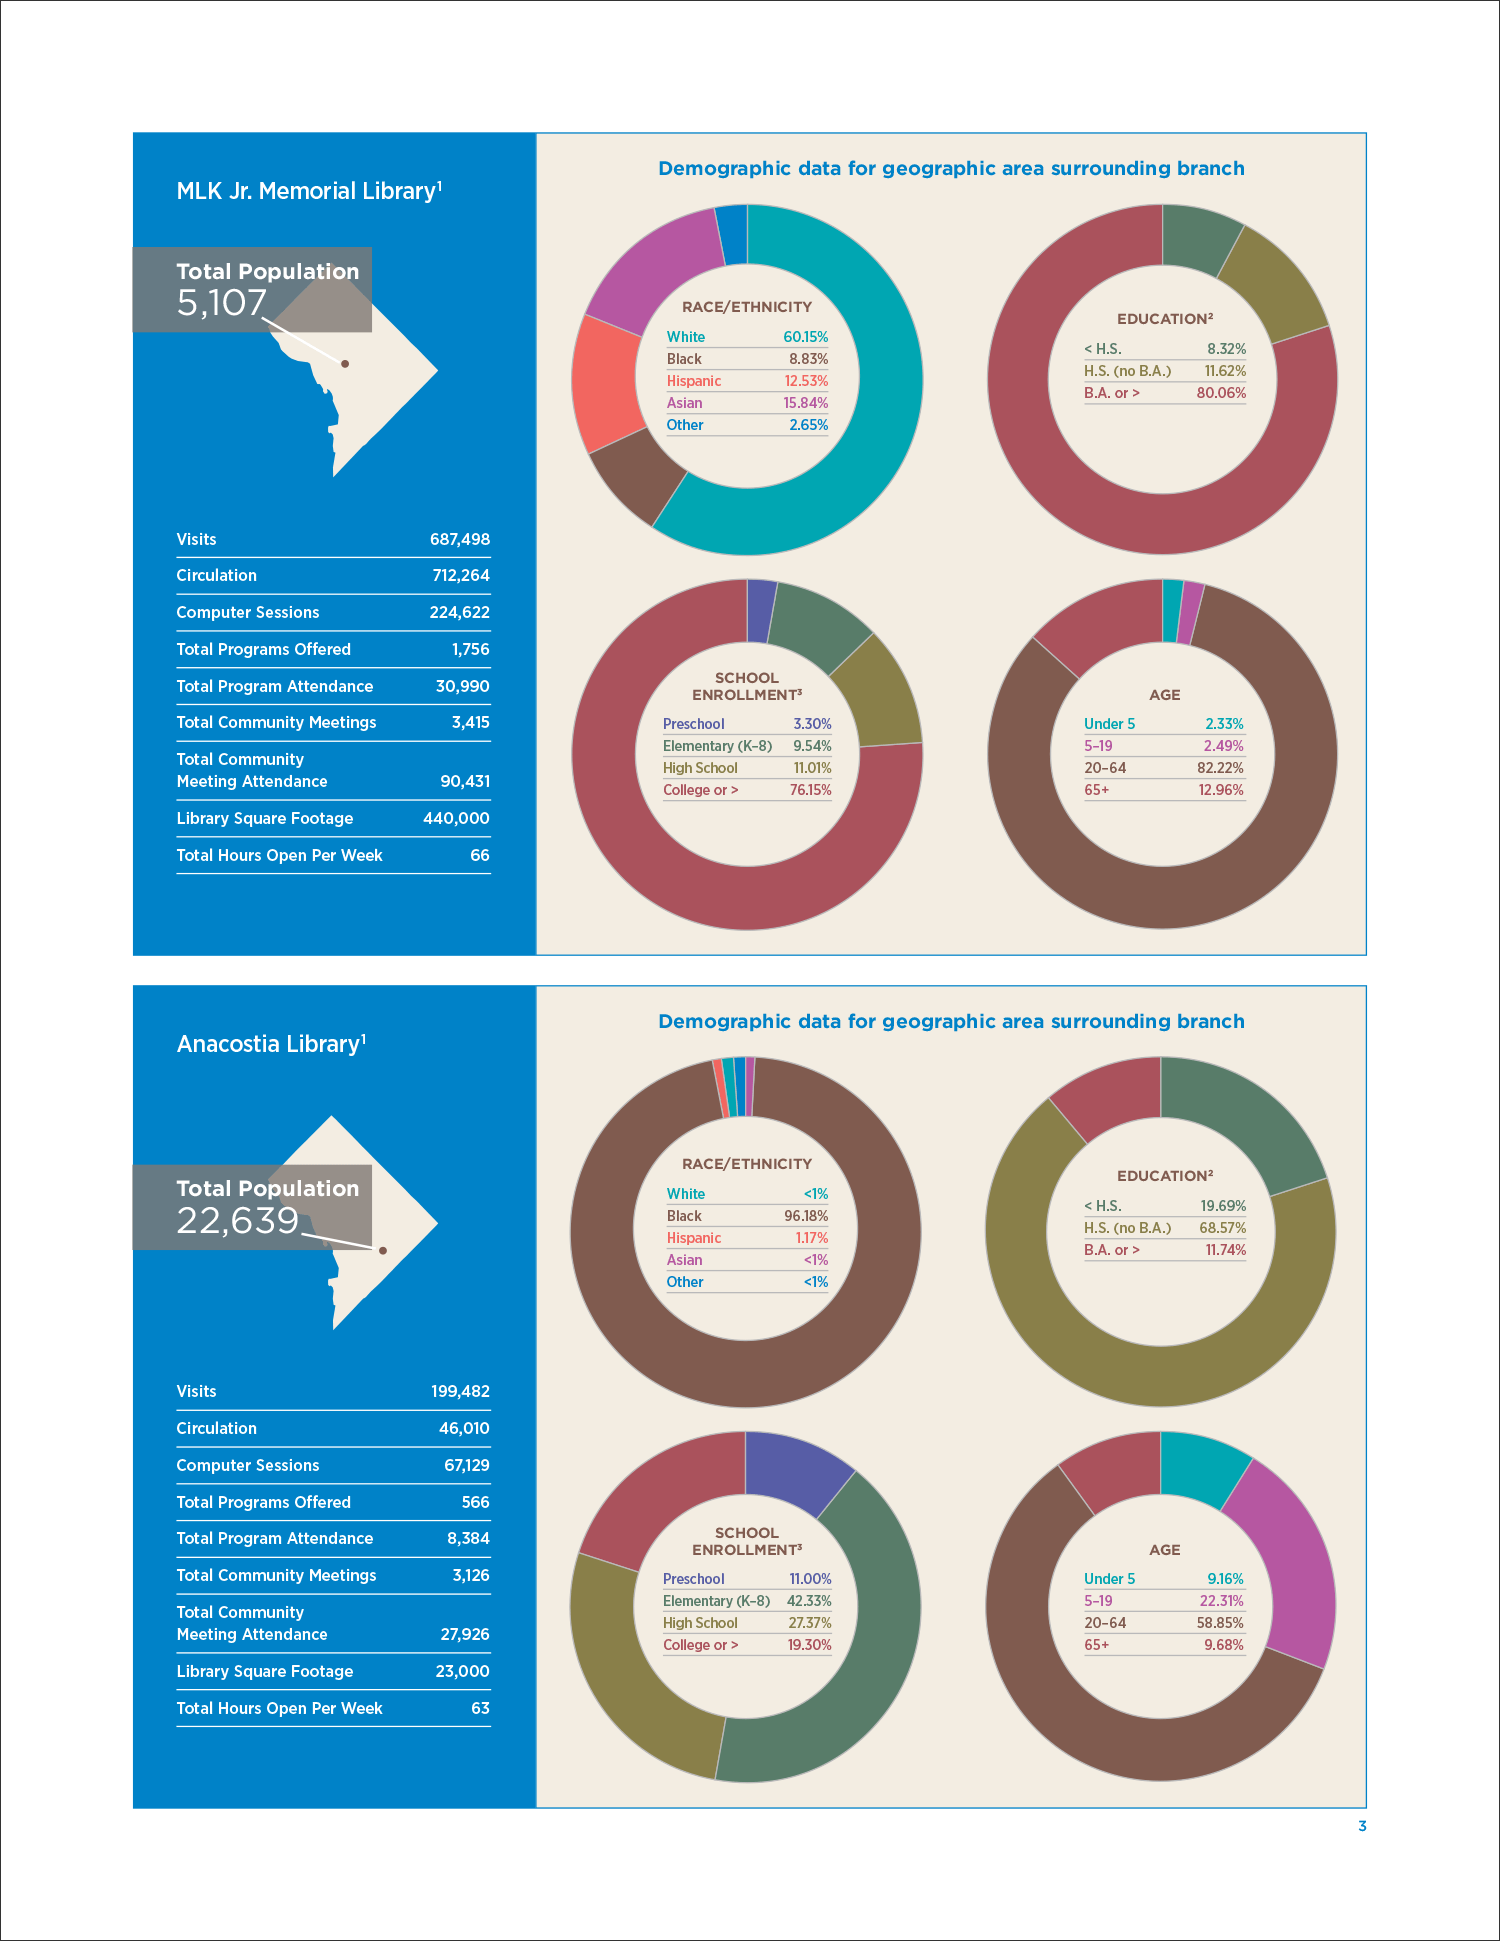 dcpl_libdata_at-a-glance_5.png